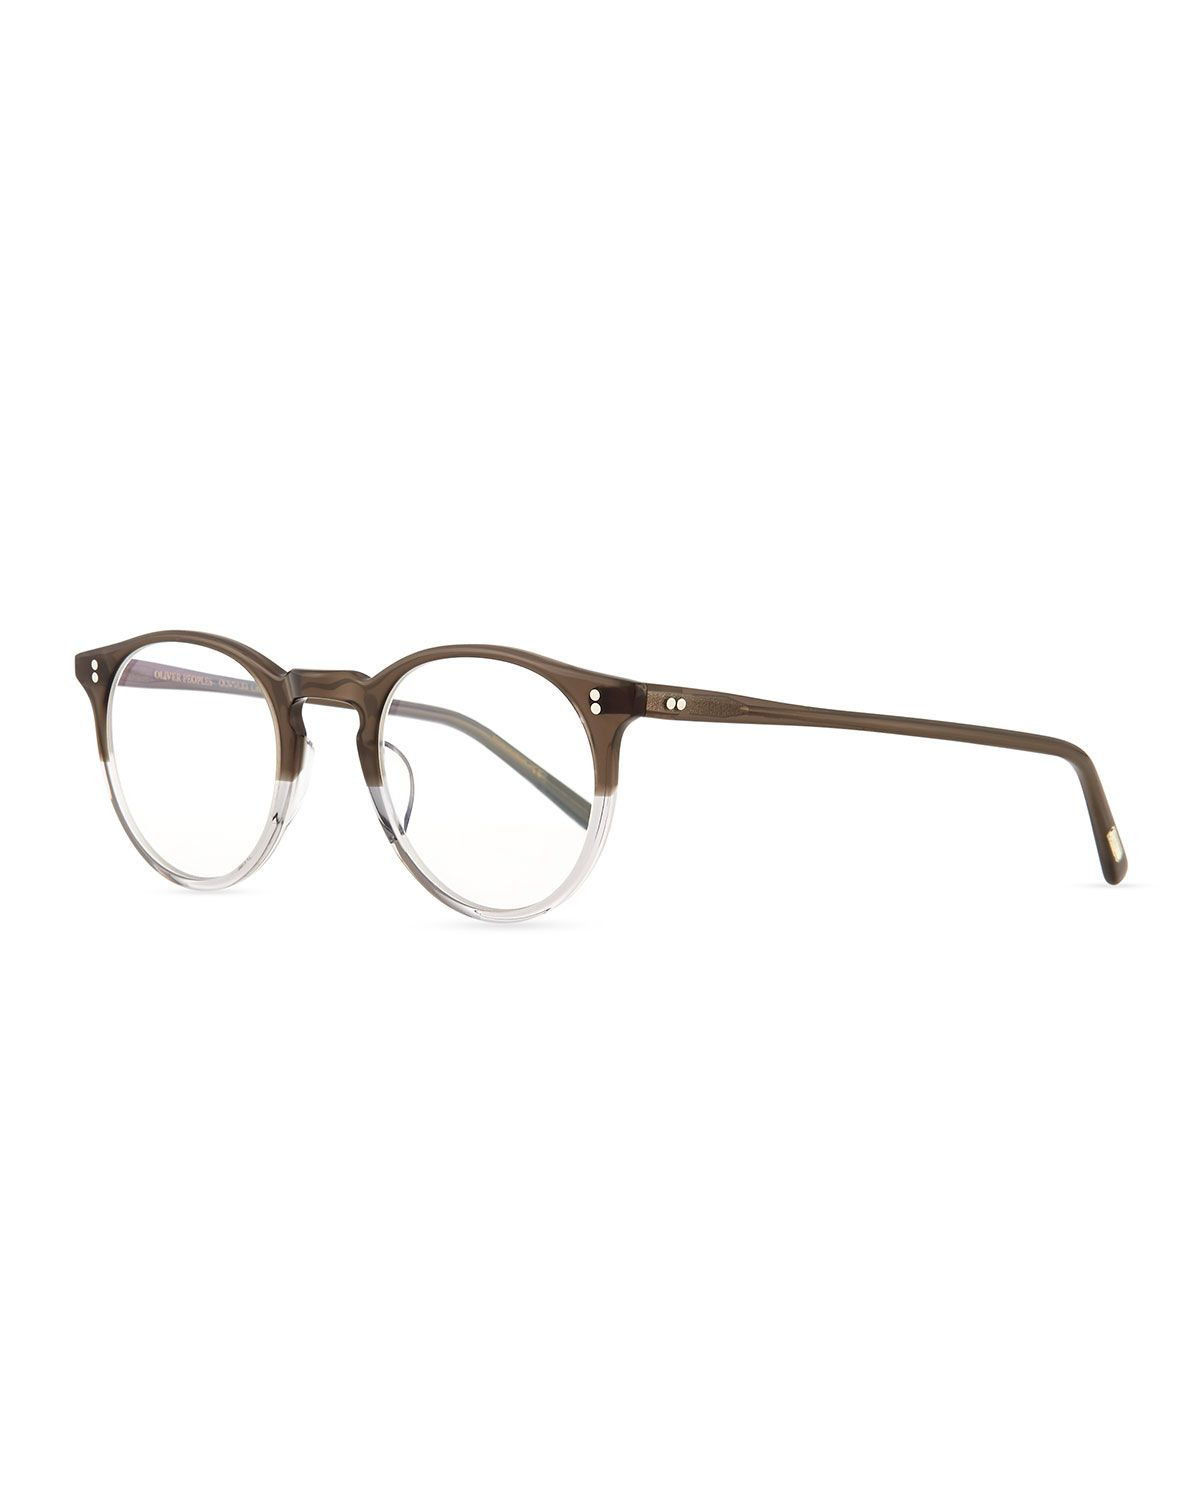 bf9193982da2 Oliver Peoples O Malley Round Fashion Glasses